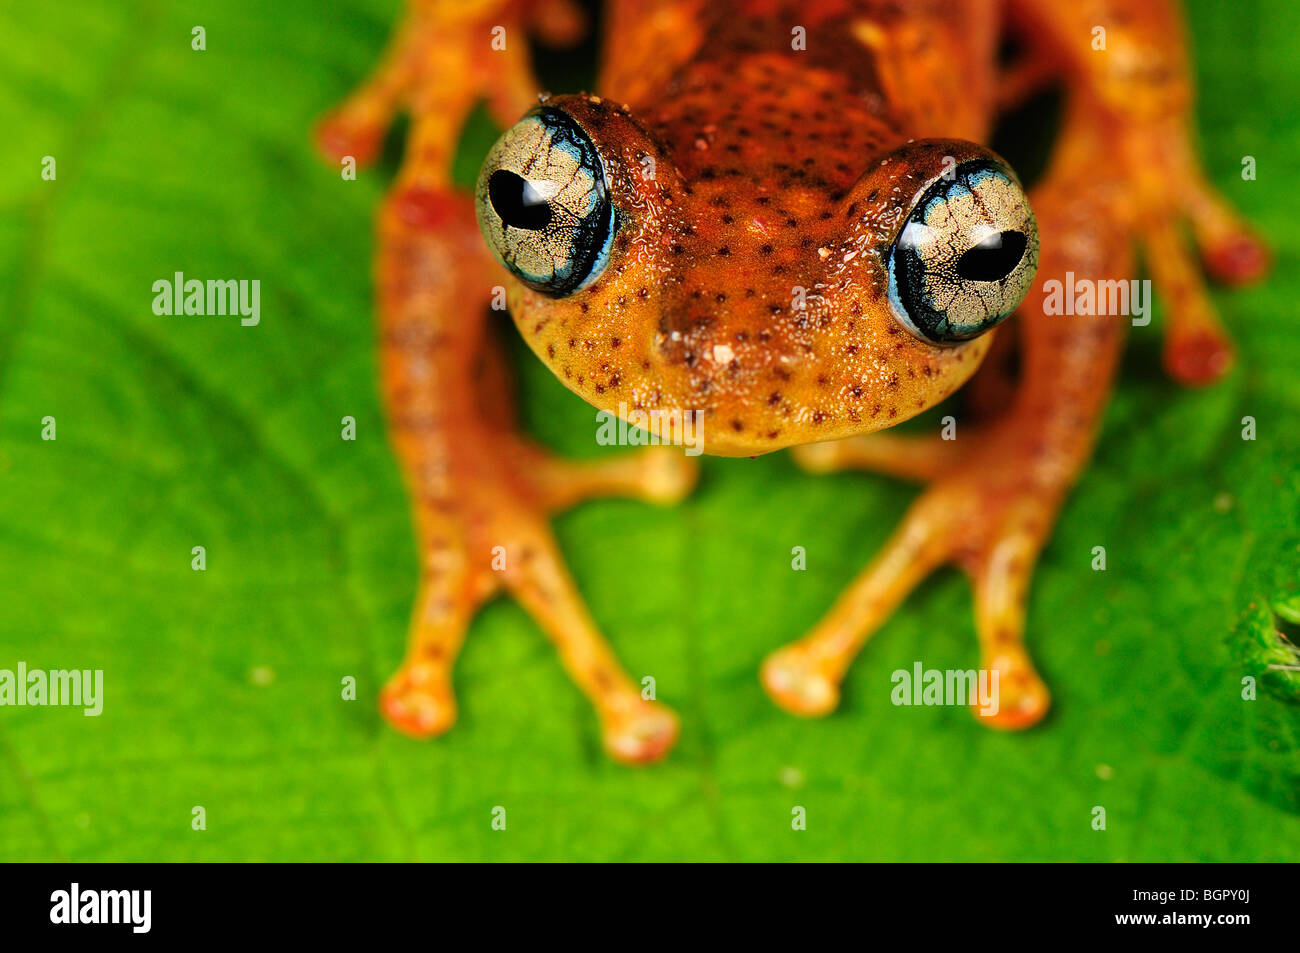 Tree Frog (Boophis tephraeomystax) (Boophis difficilis}, adult, Andasibe-Mantadia National Park, Madagascar - Stock Image